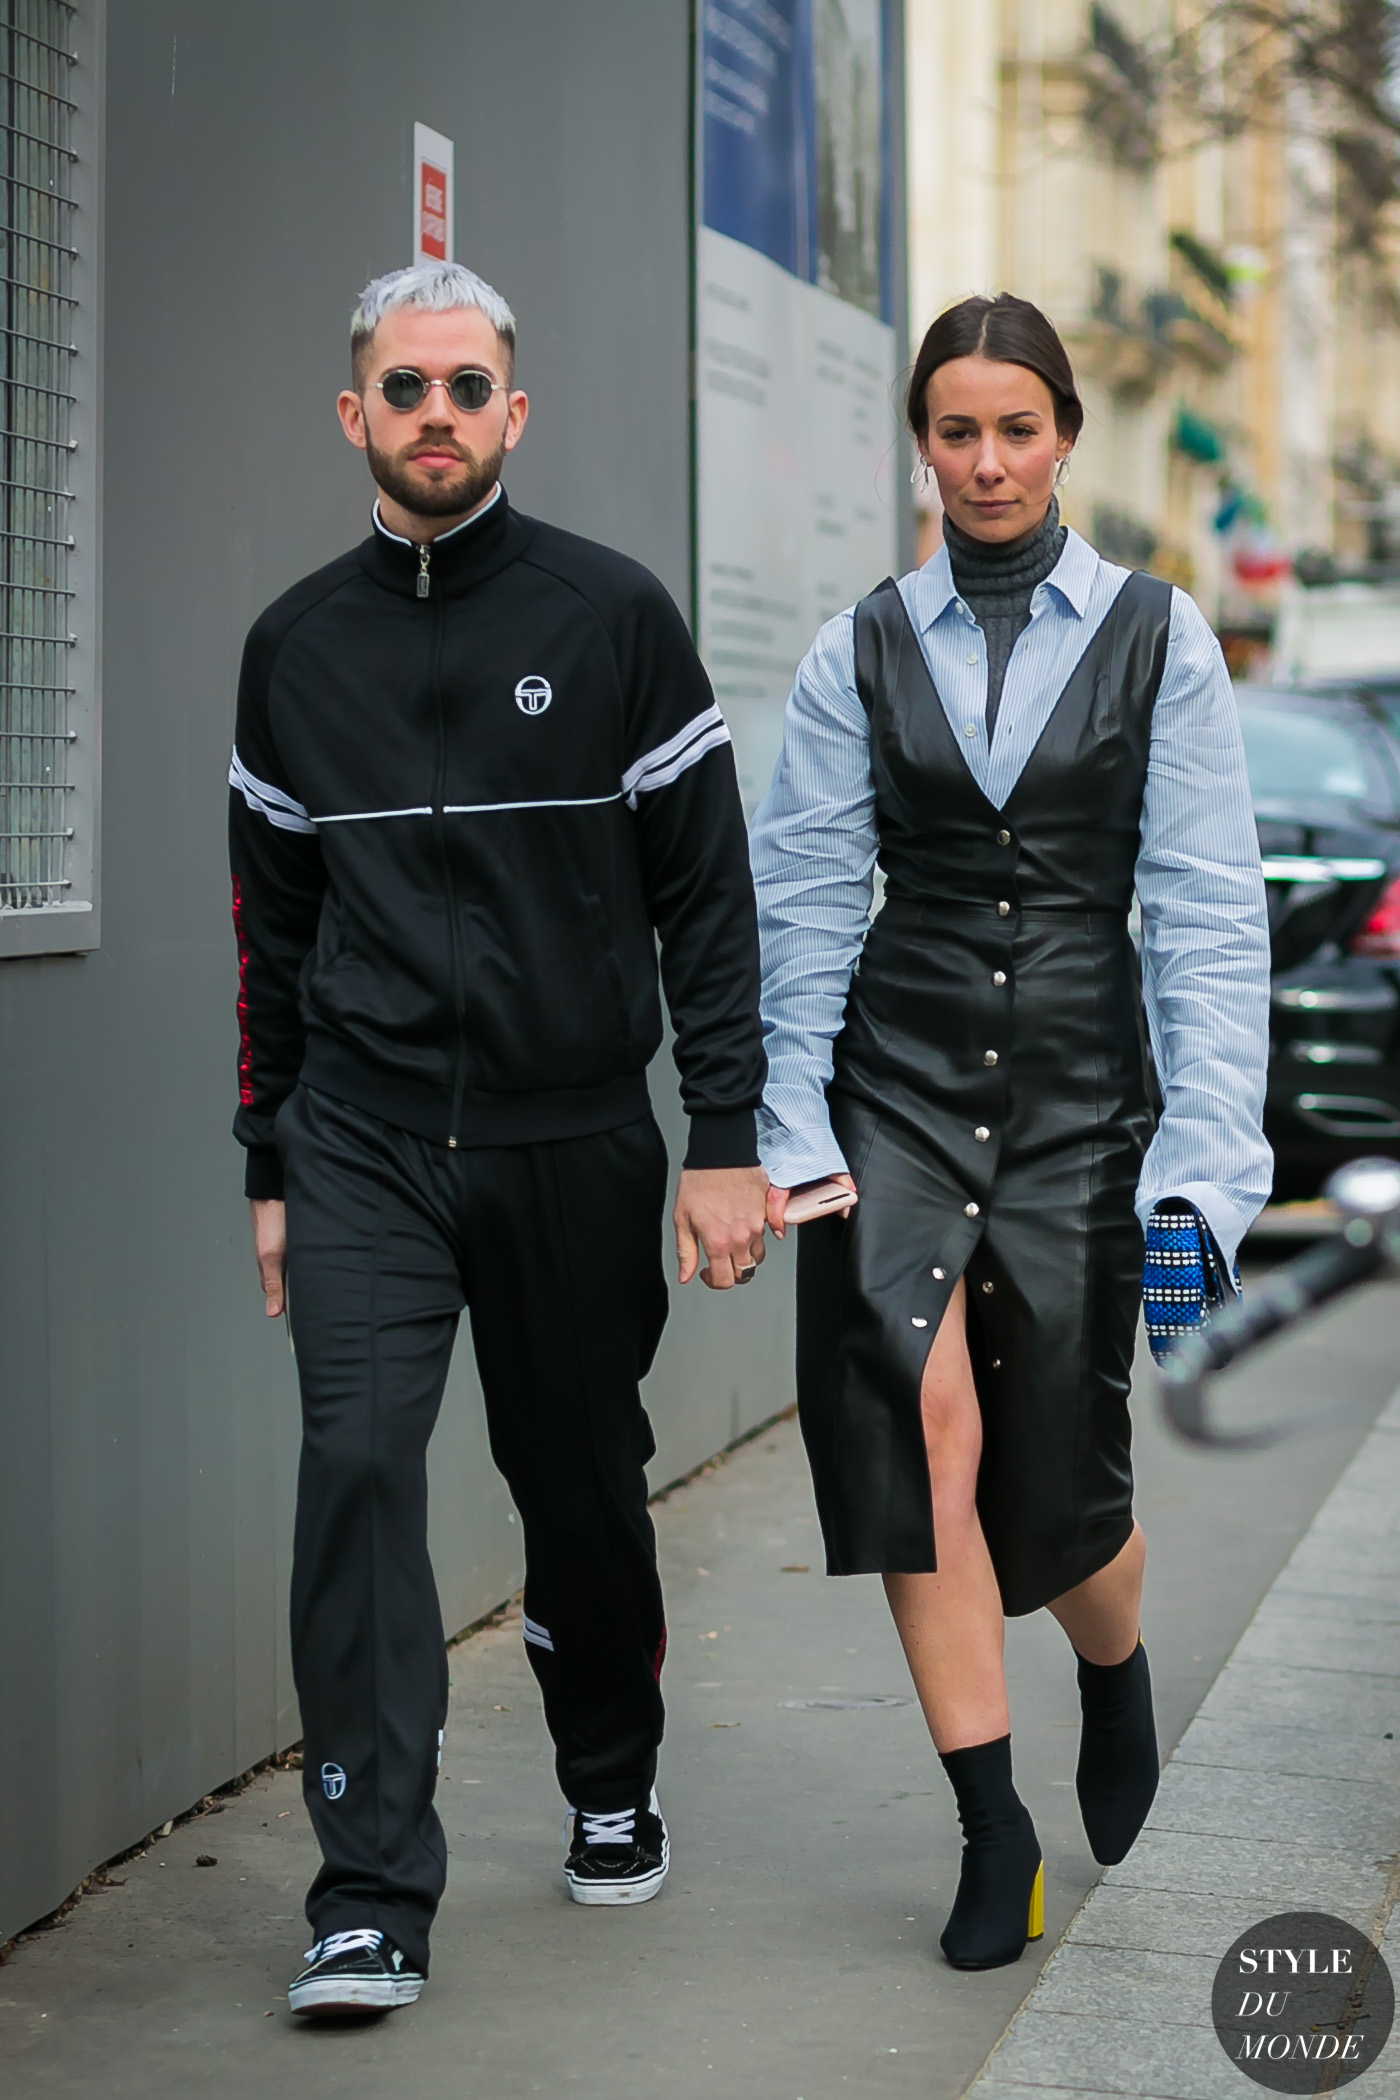 Alice & js by STYLEDUMONDE Street Style Fashion Photography